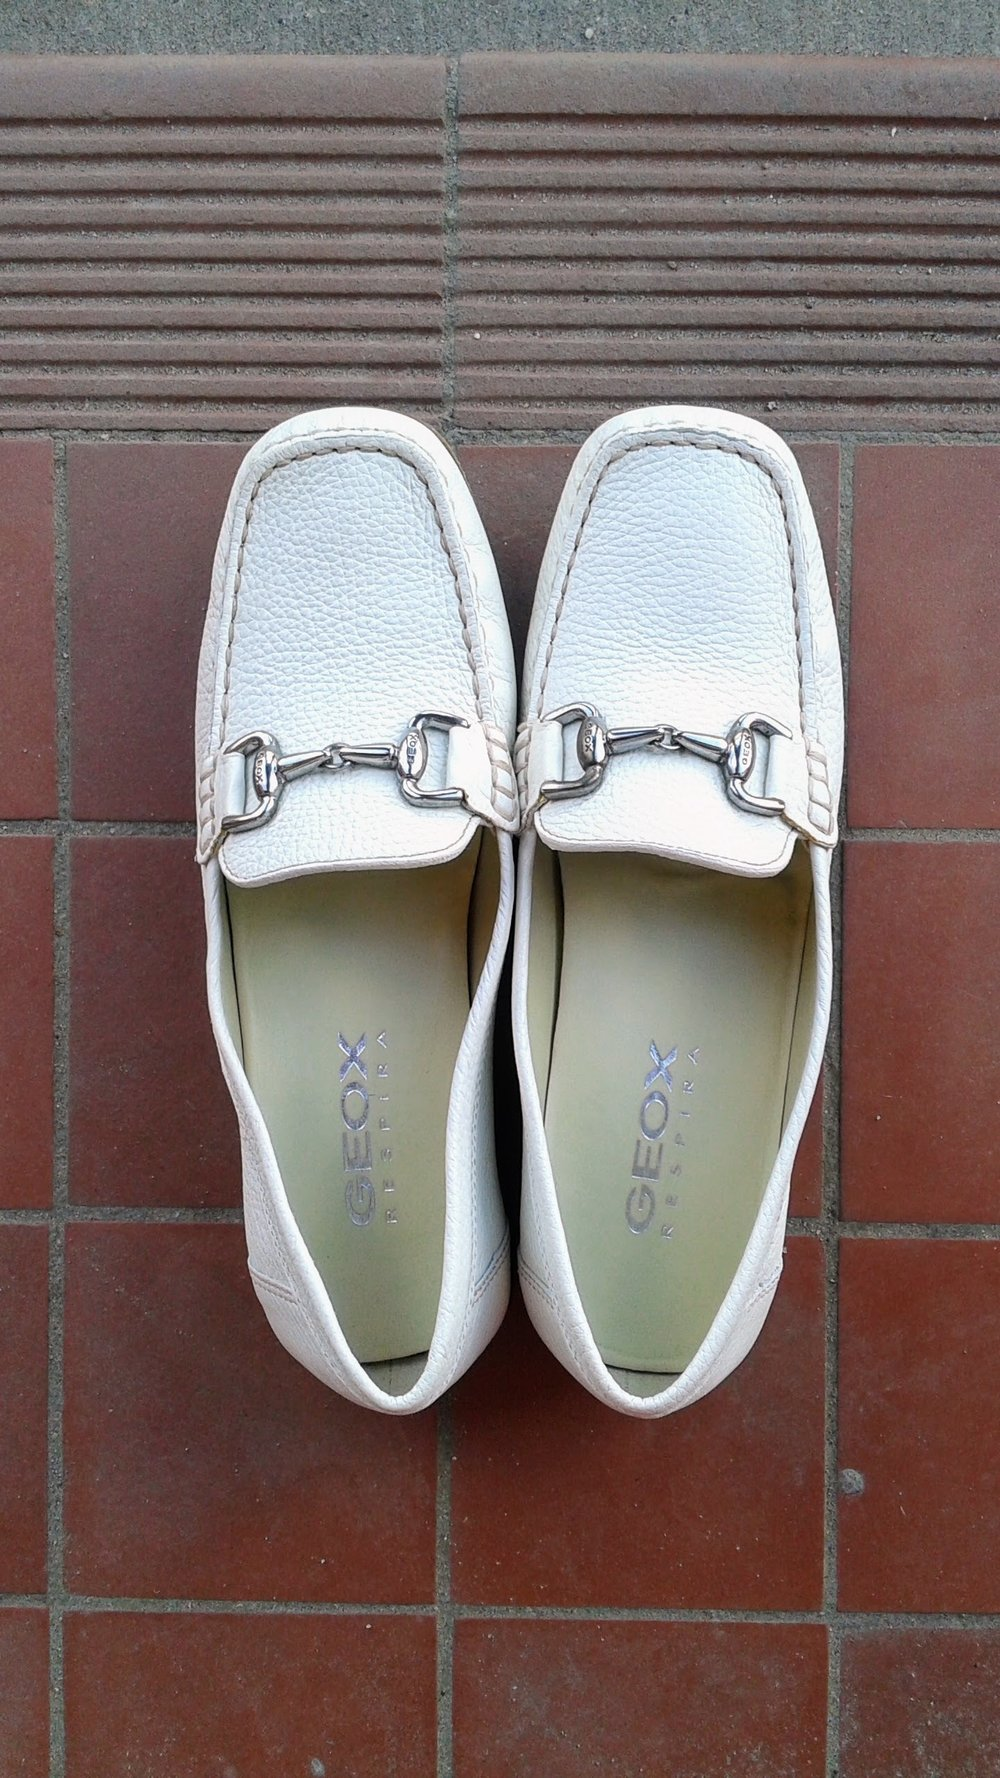 Geox shoes; S7.5, $36